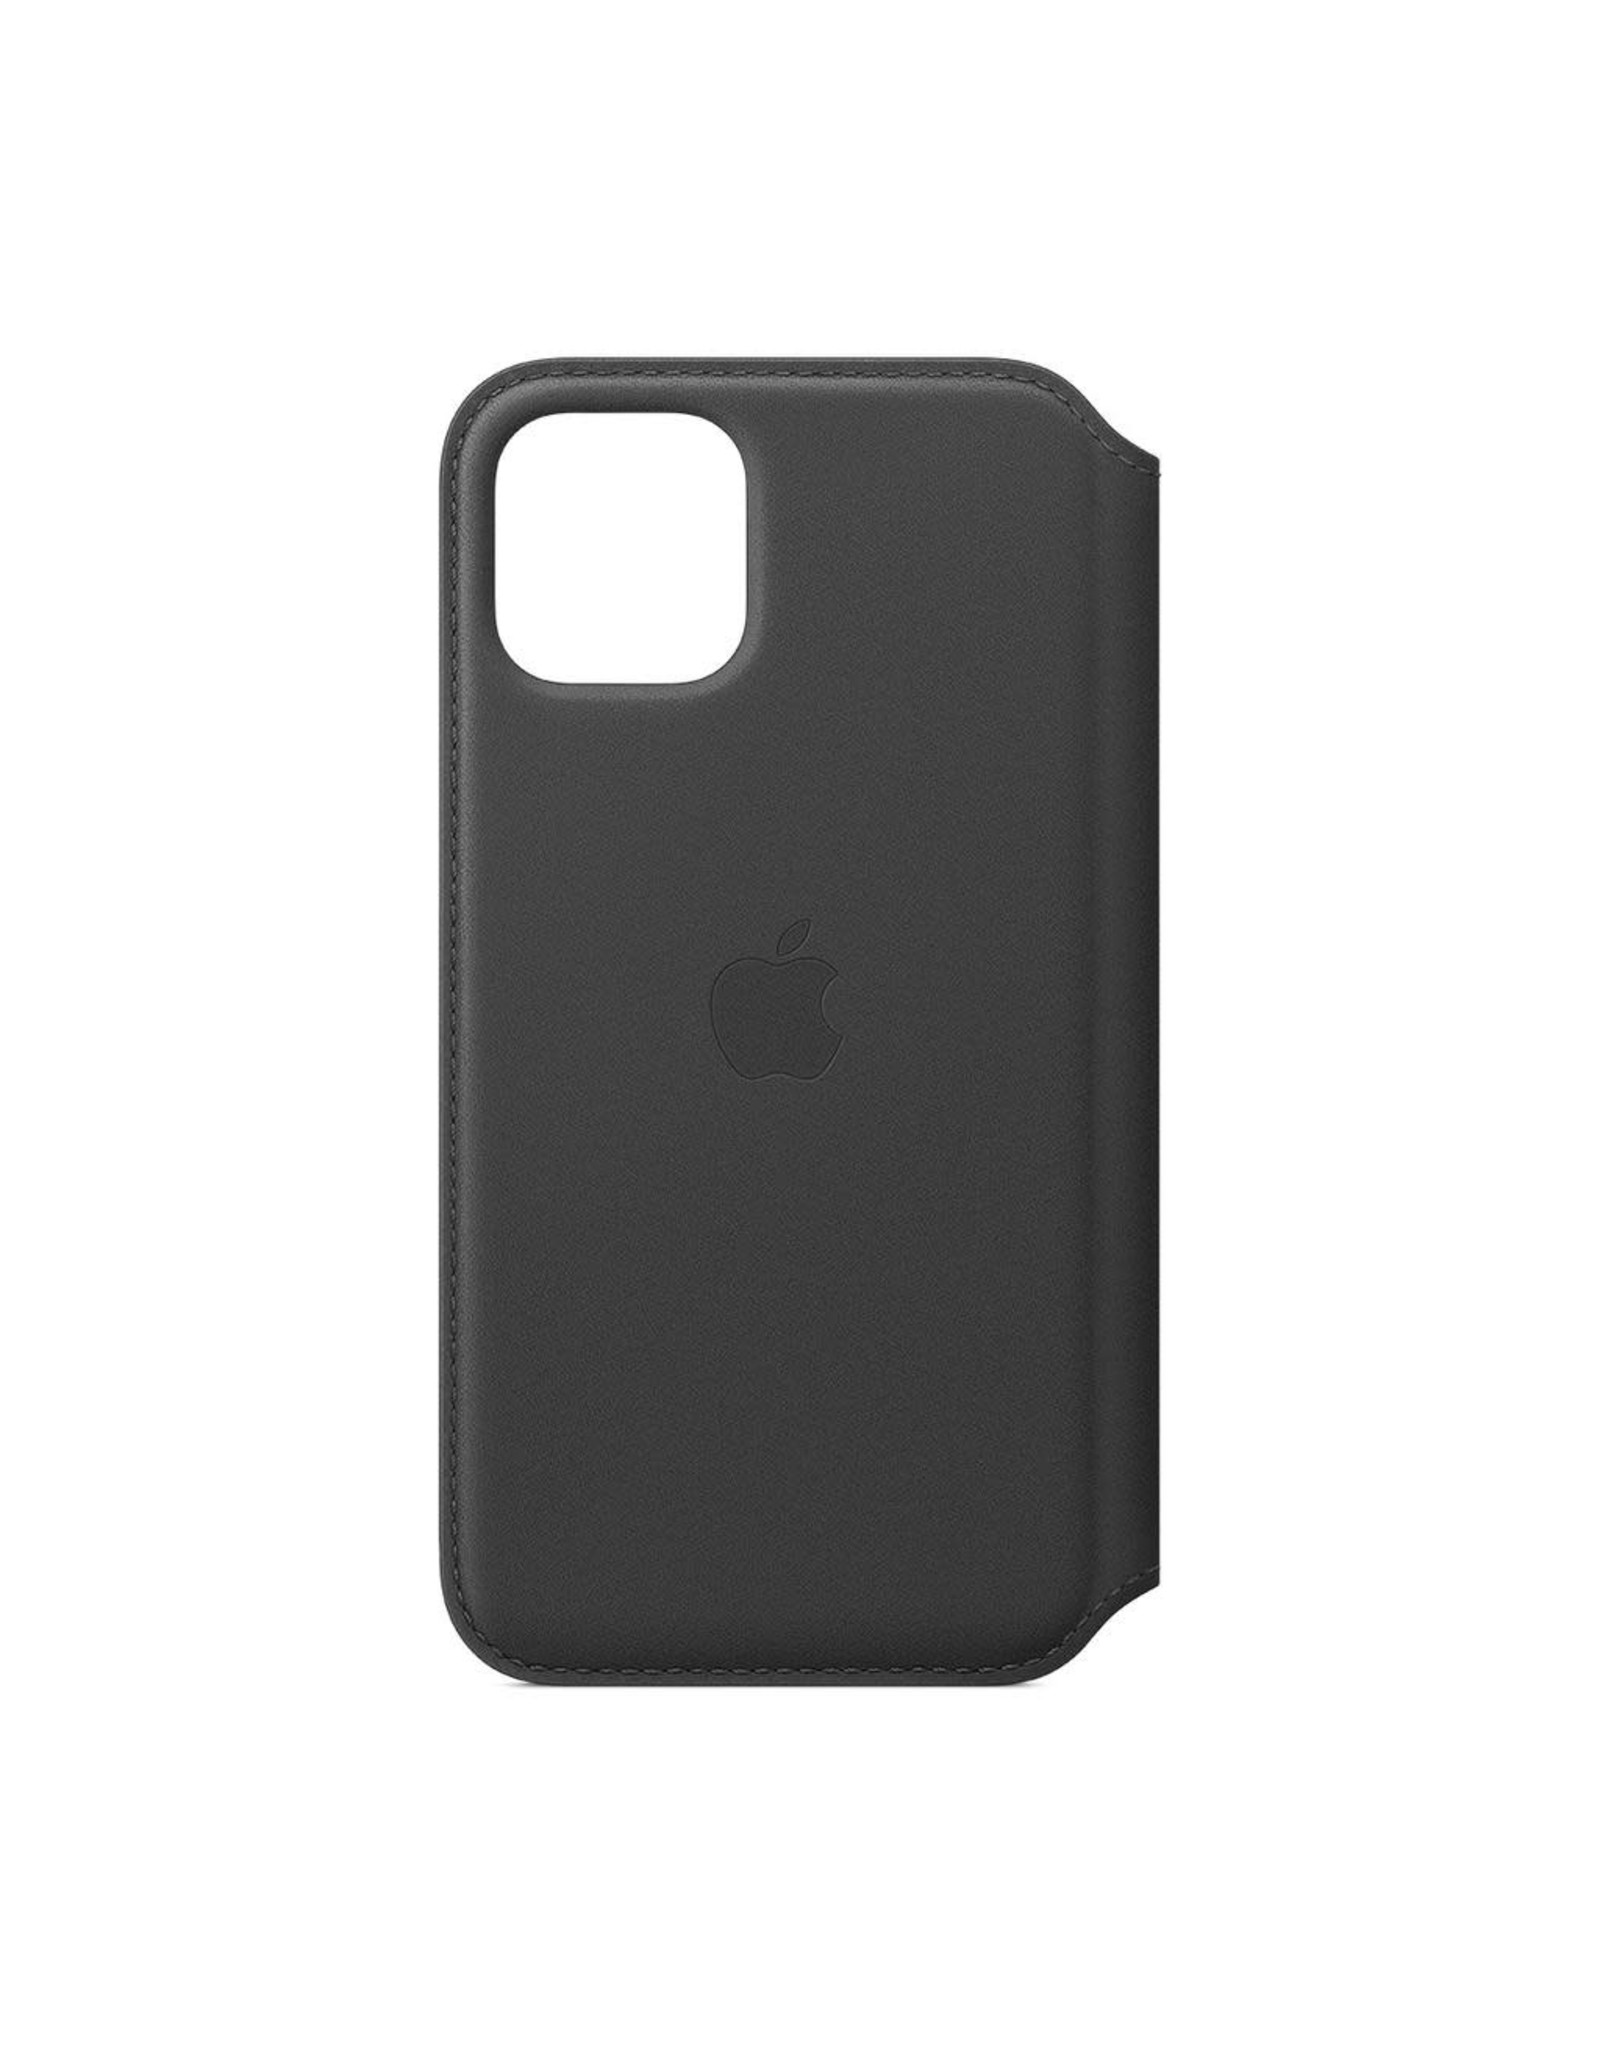 Apple Apple iPhone 11 Pro Leather Folio - BLACK